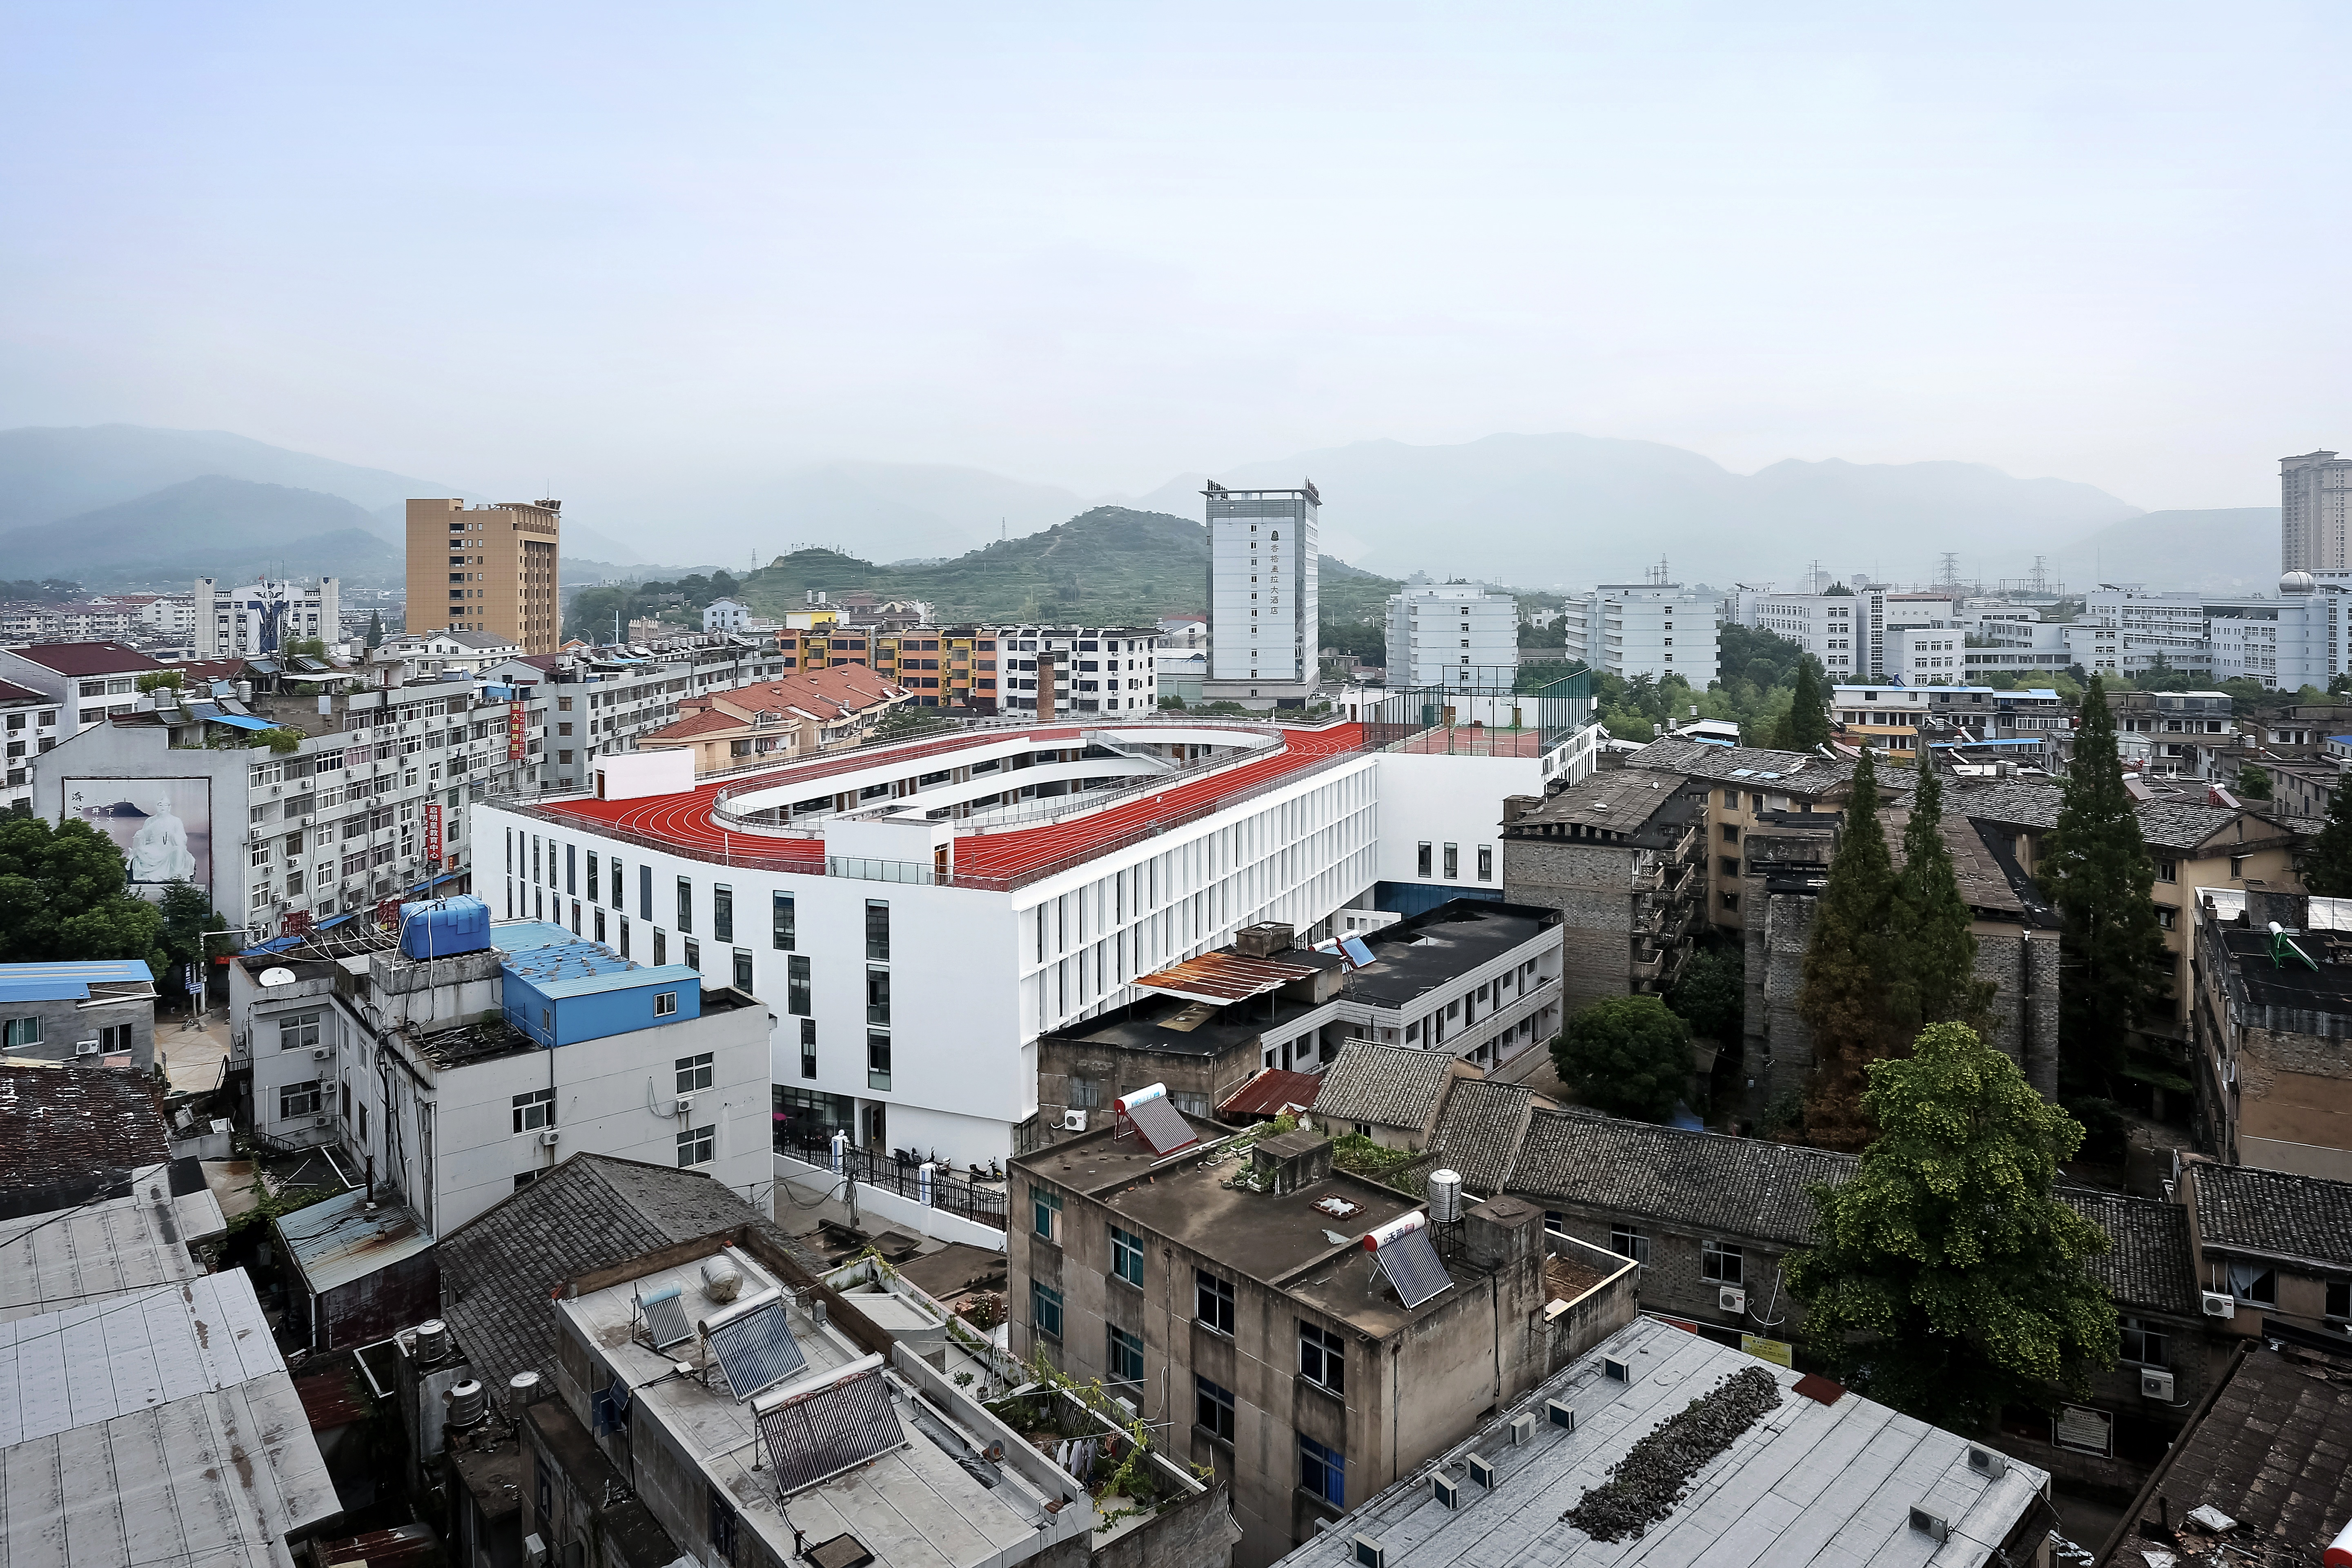 Tiantai No.2 Primary School